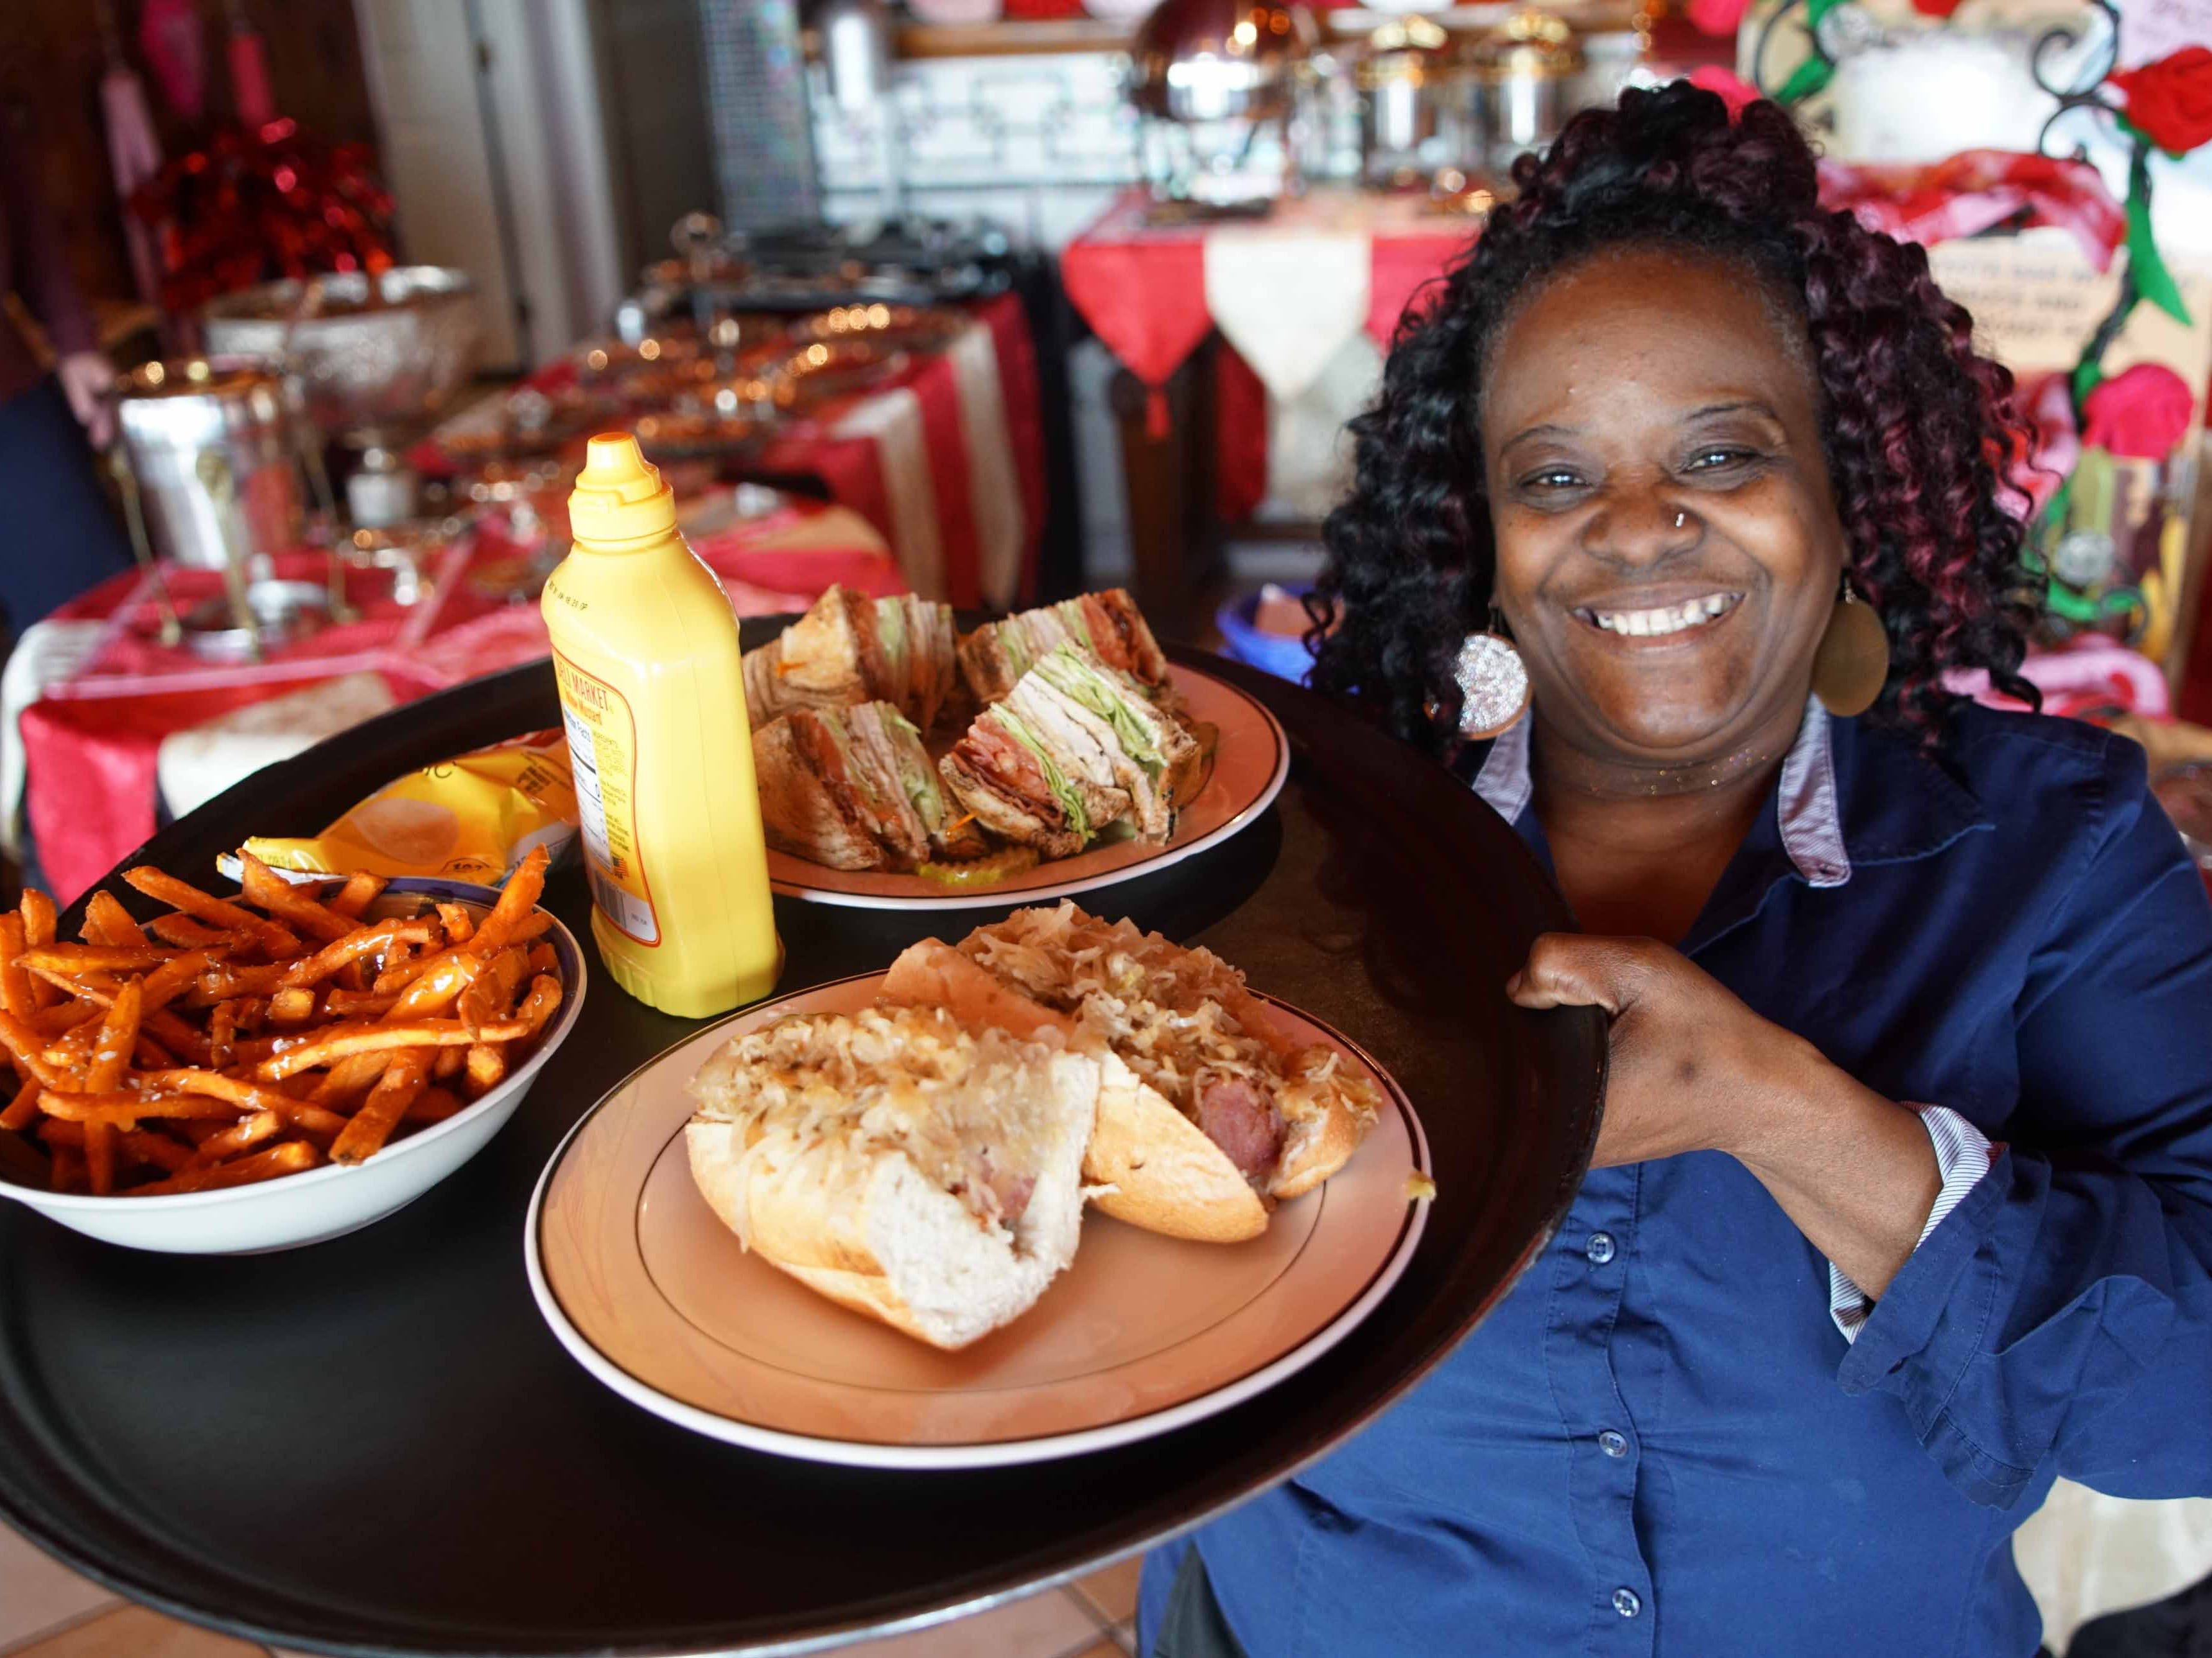 Sheila Loper, a server at Serendipity Restaurant in Oak Orchard, holds a tray of food for patrons visiting the establishment located on Indian River.